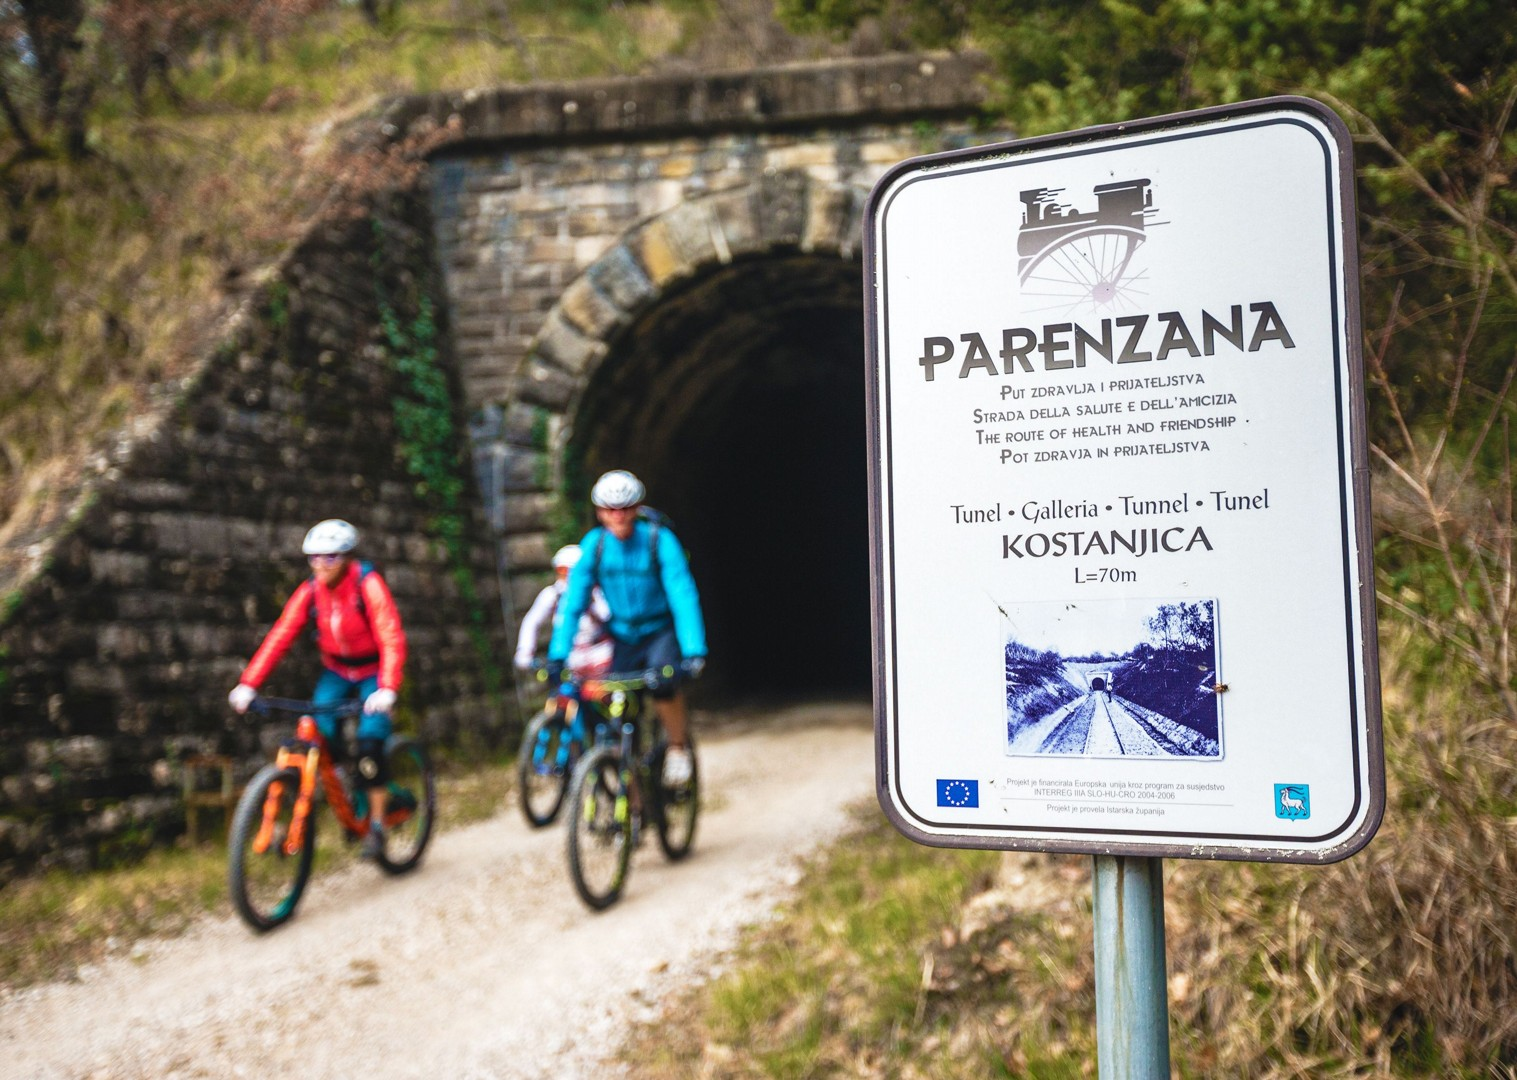 parenzana-electric-mountain-biking-holiday-in-croatia-terra-magica-skedaddle.jpg - NEW! Croatia - Terra Magica - eMTB - Mountain Biking